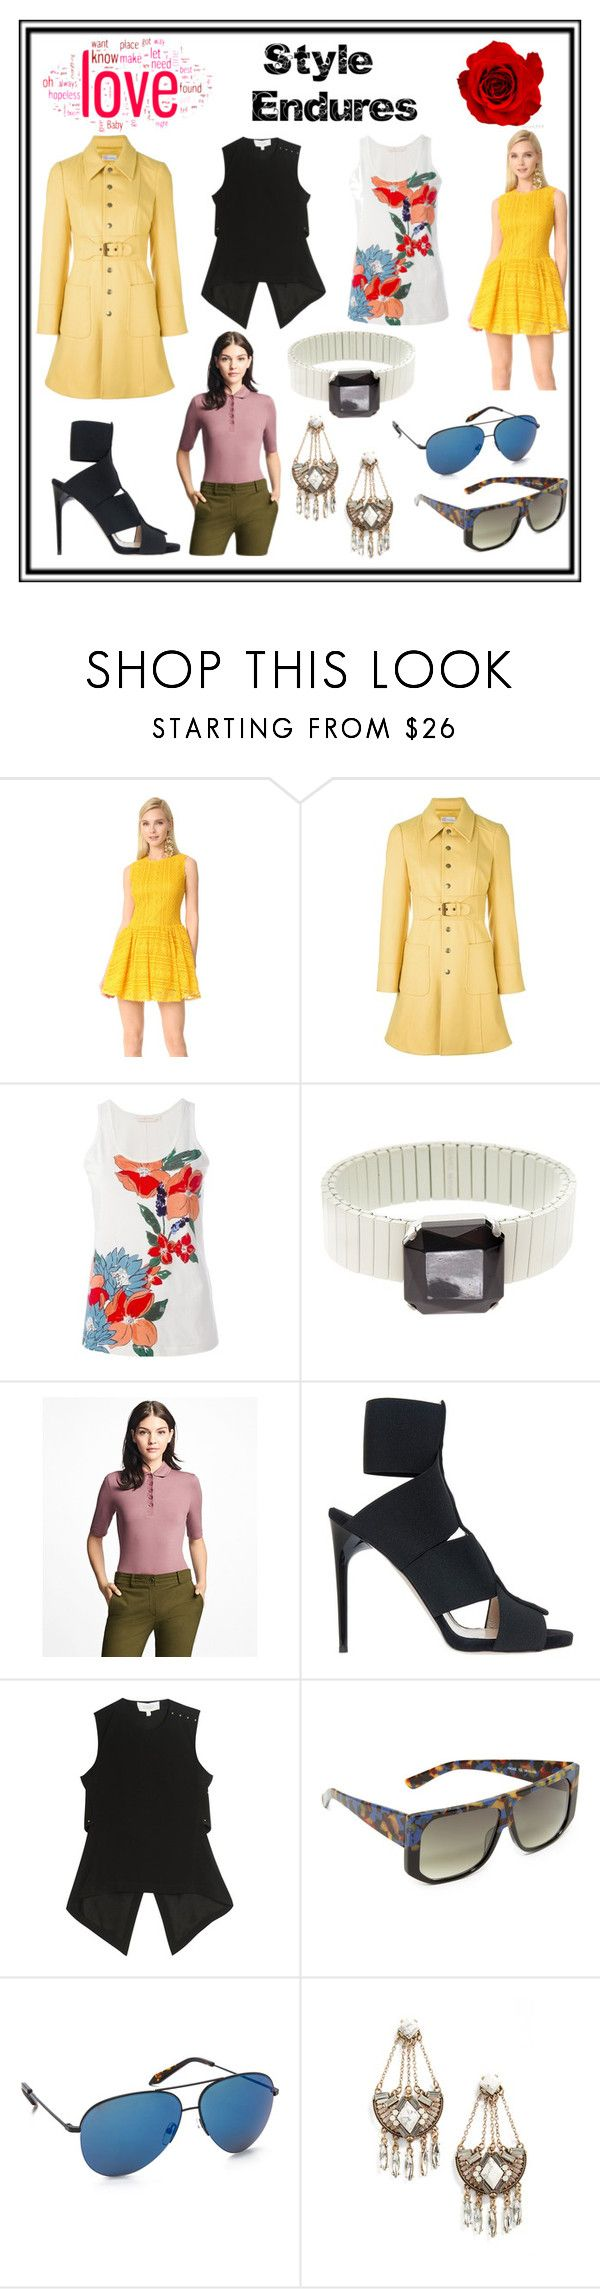 """Style Endure"" by cate-jennifer ❤ liked on Polyvore featuring RED Valentino, Tory Burch, Isabel Marant, Brooks Brothers, Paul Andrew, 10 Crosby Derek Lam, Hadid, Victoria Beckham and Cara"